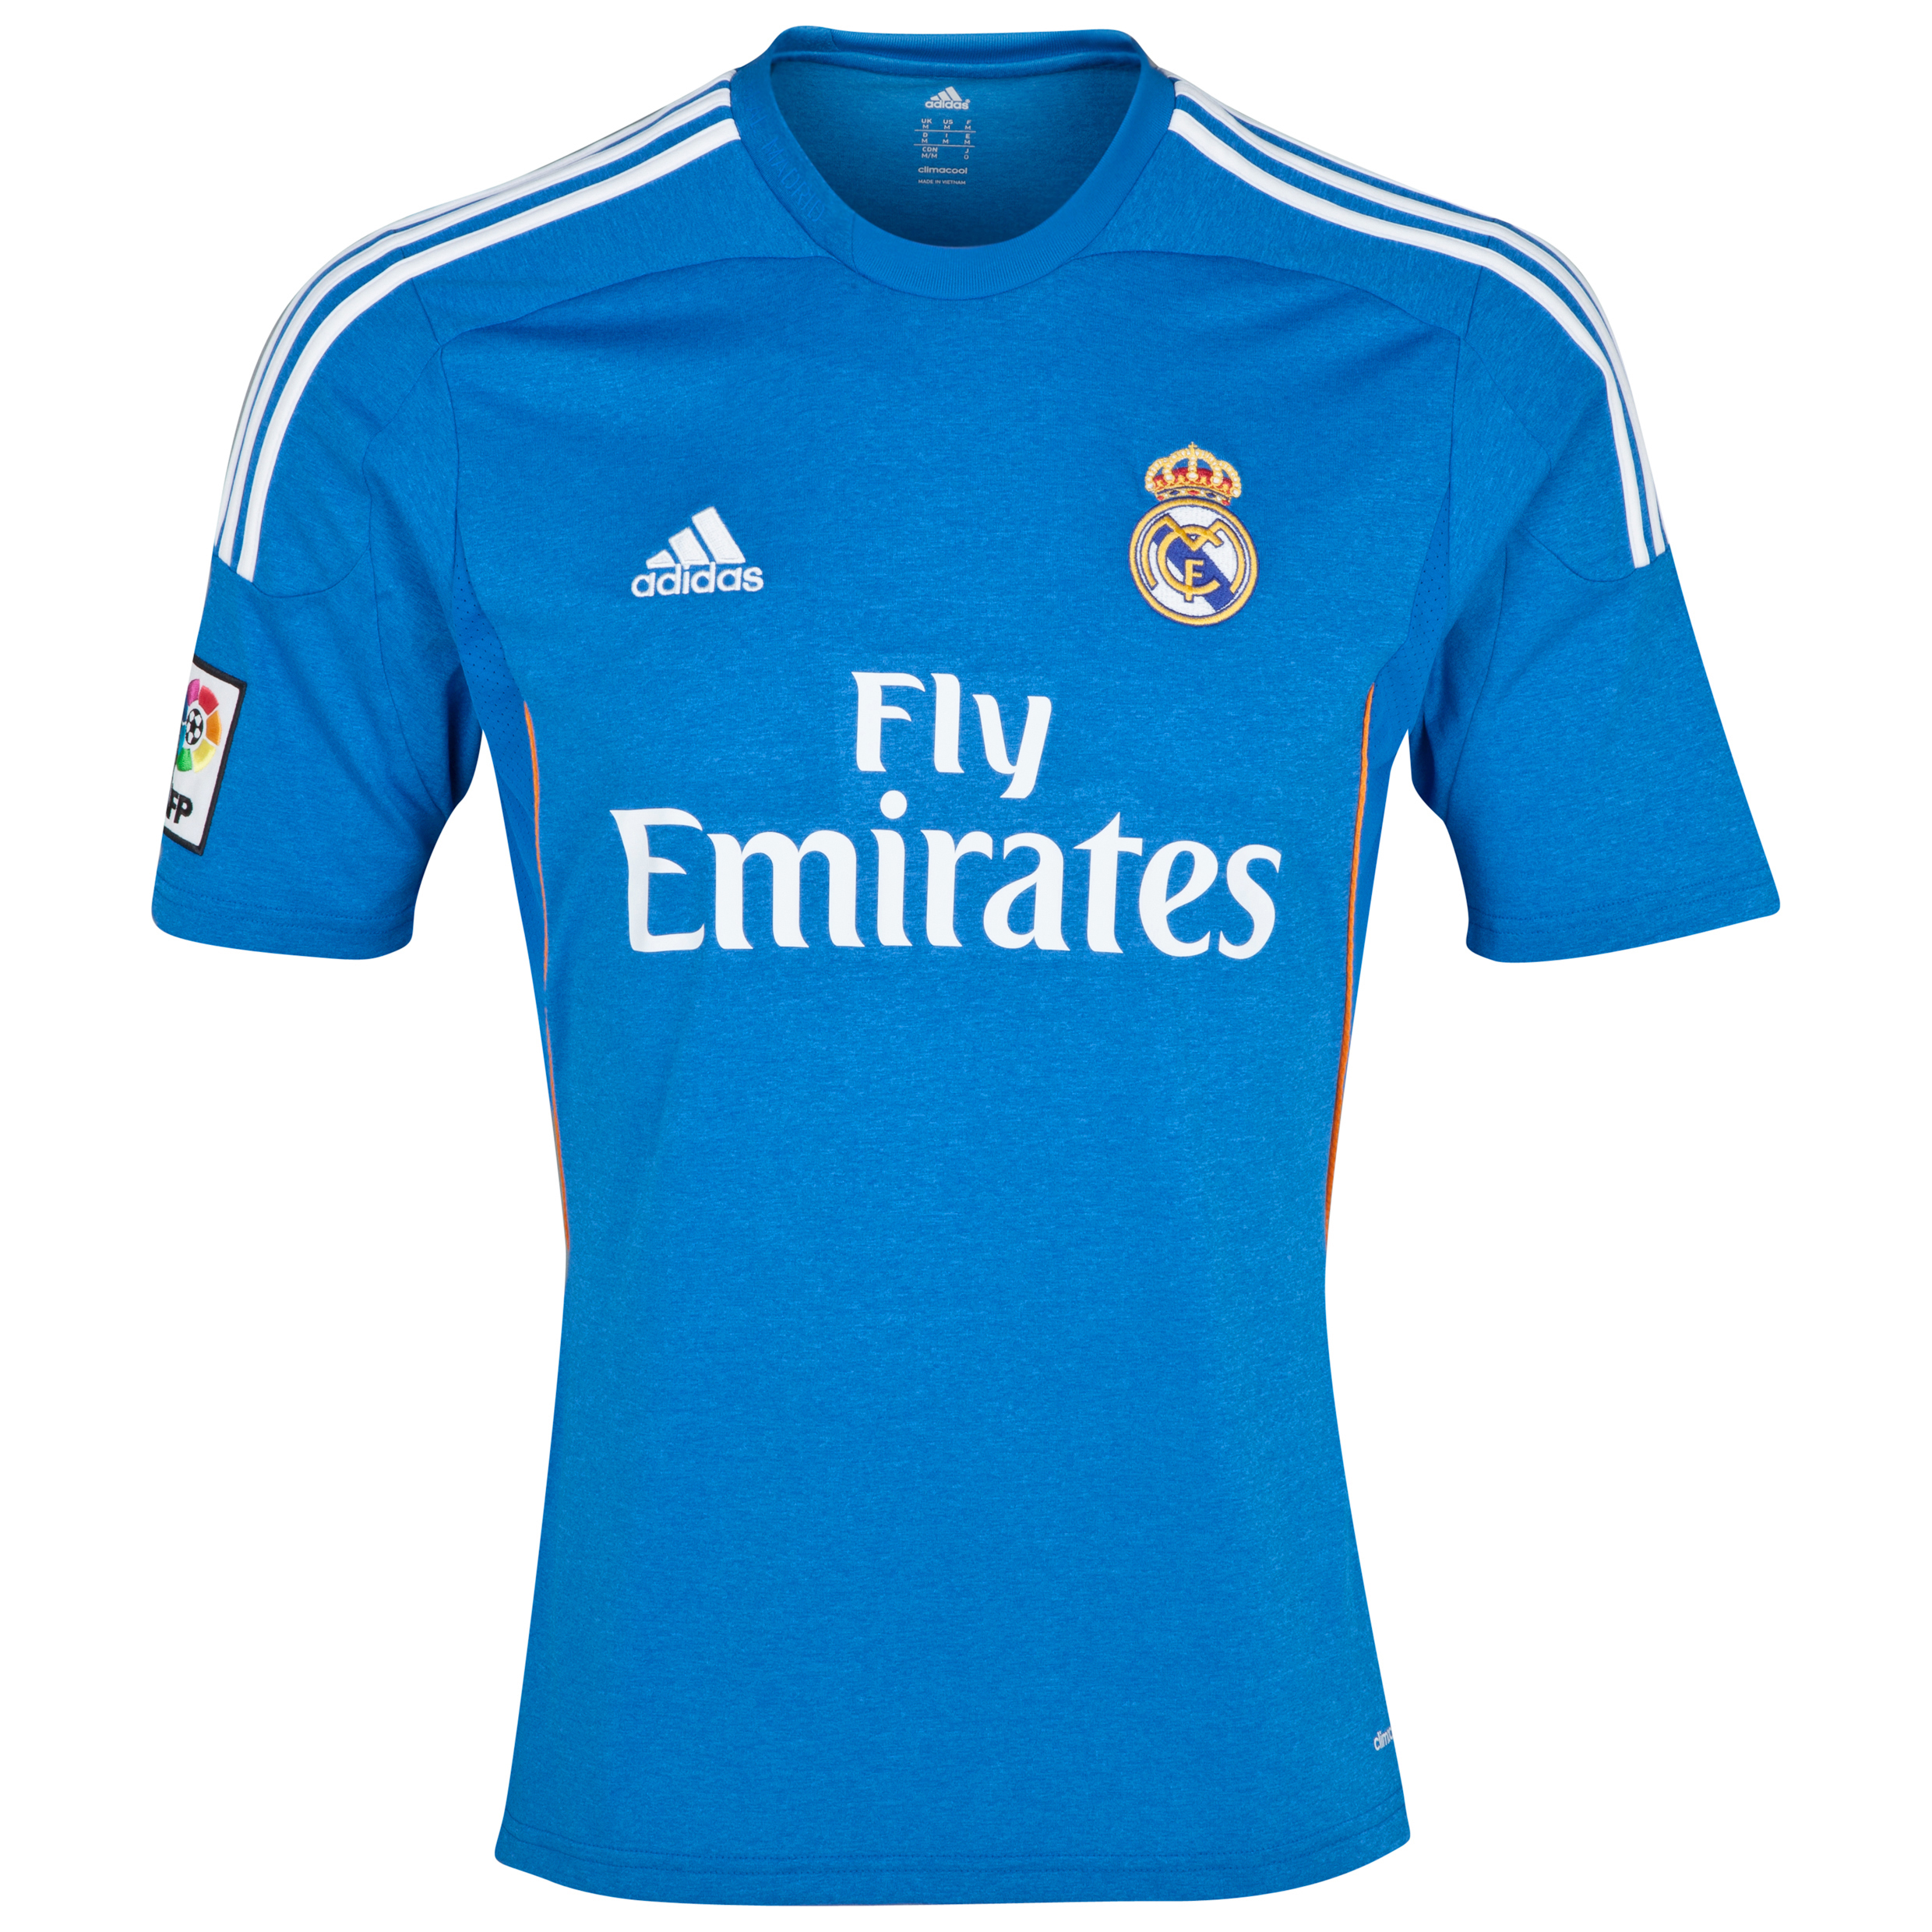 Buy Real Madrid Away Kit 2013/14 kids